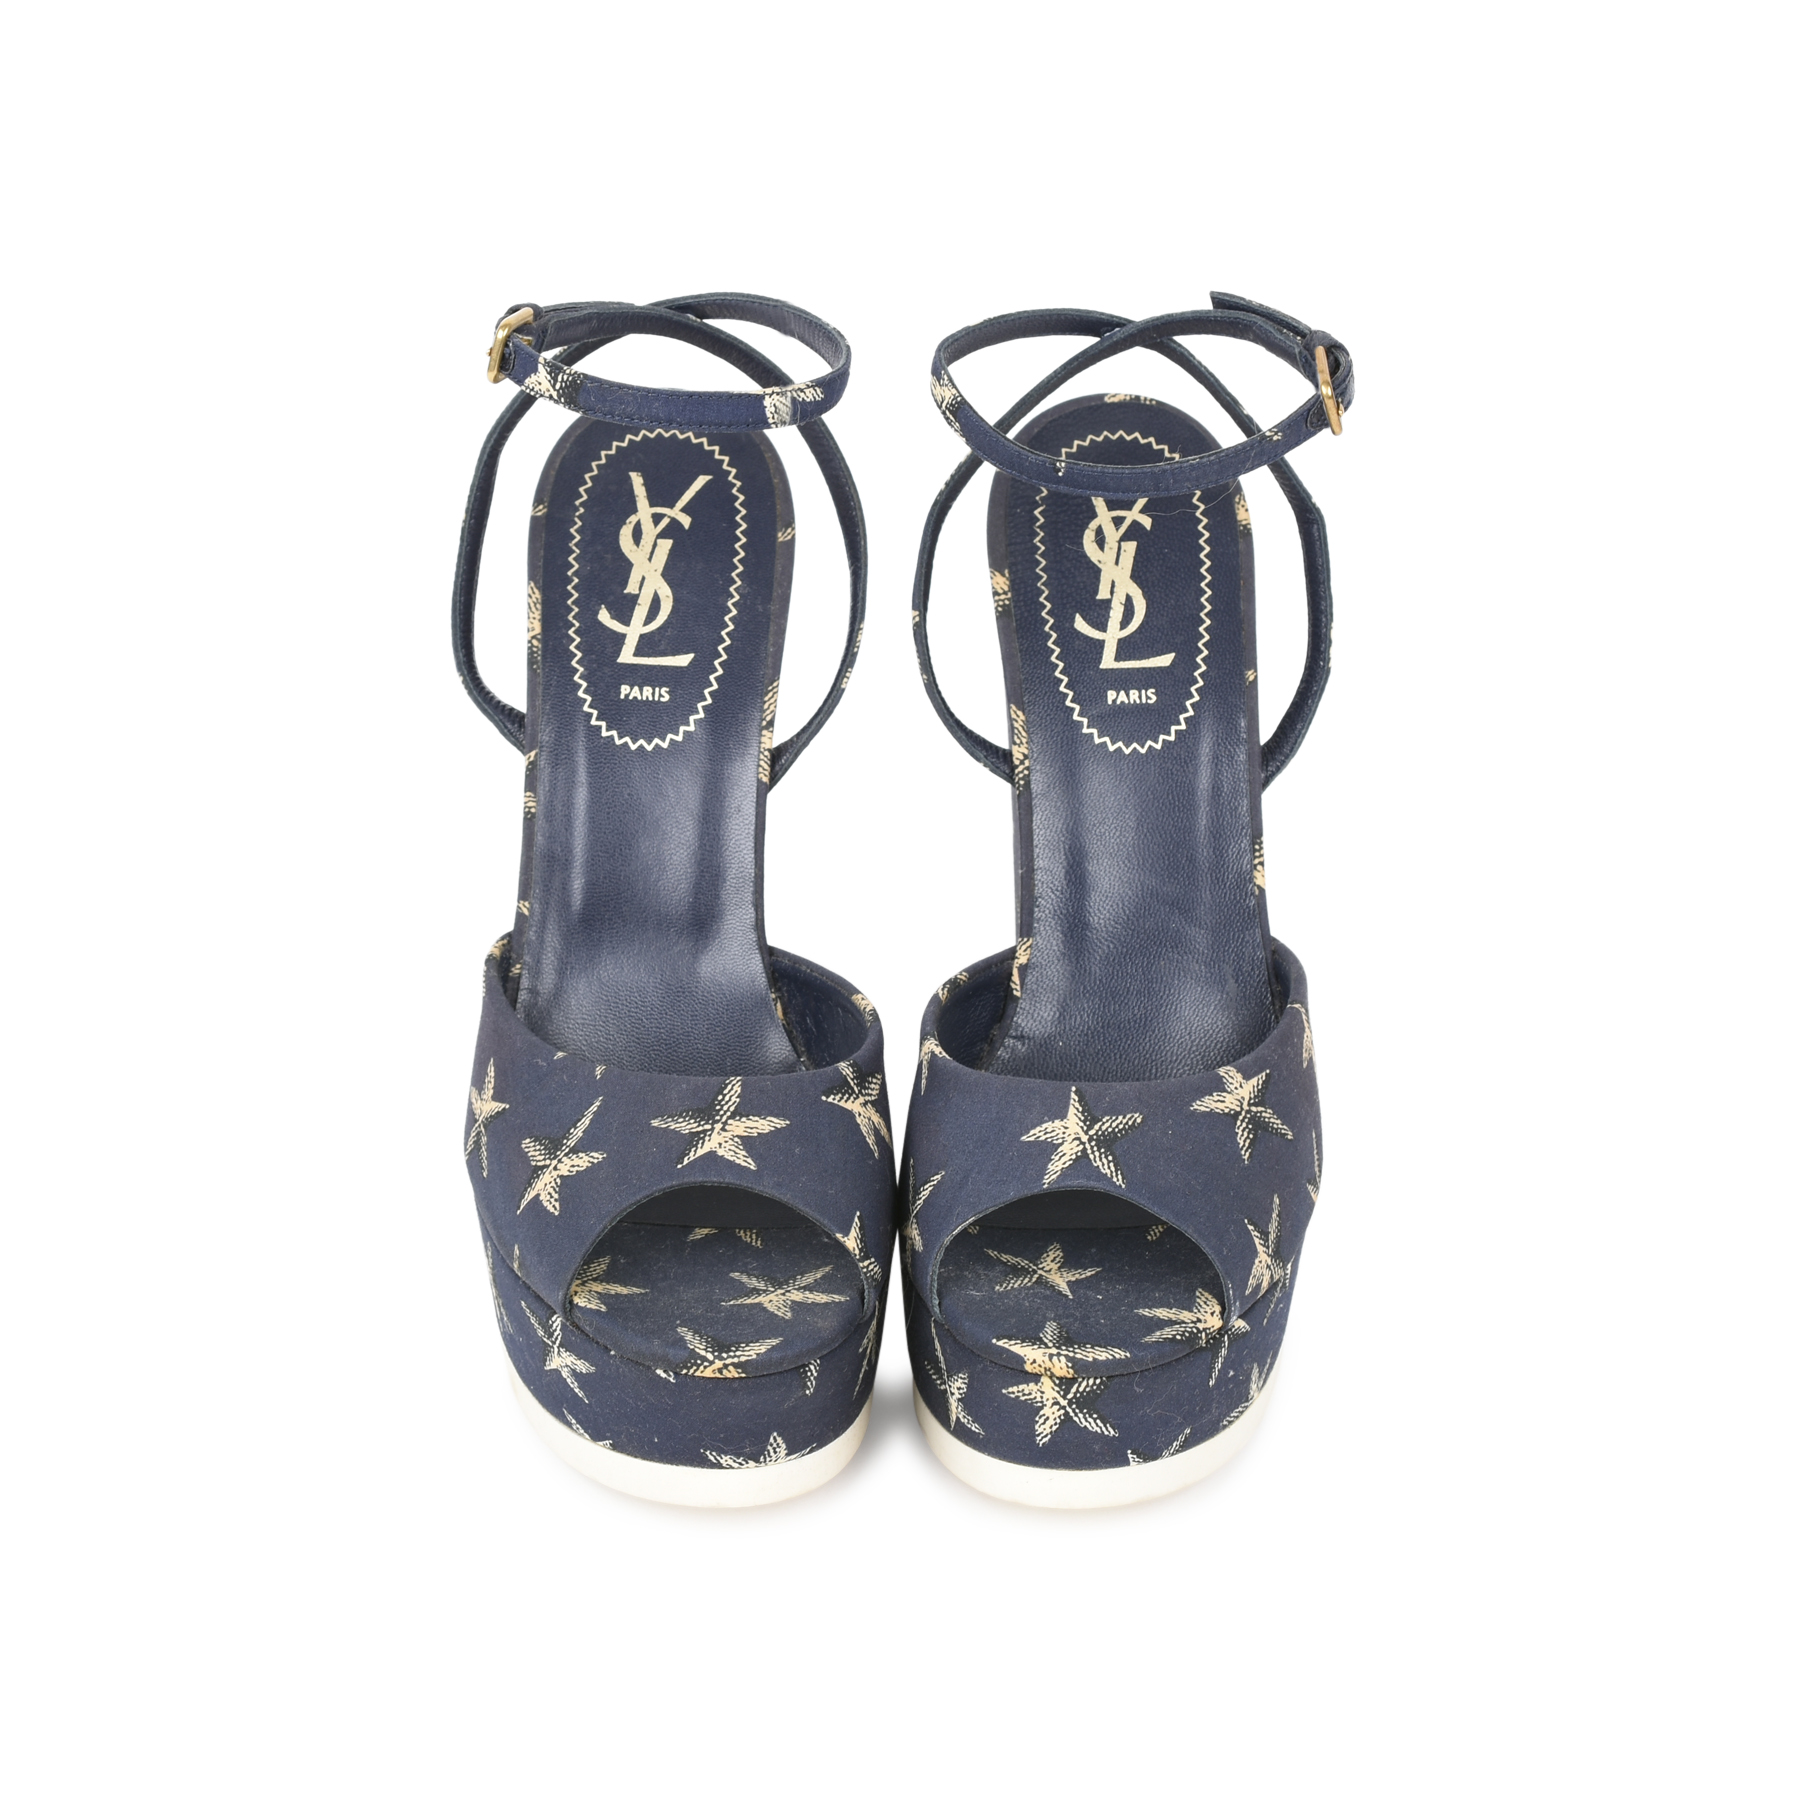 0fca34ca3cf Authentic Second Hand Yves Saint Laurent Starfish Wedge Sandals  (PSS-498-00017) - THE FIFTH COLLECTION